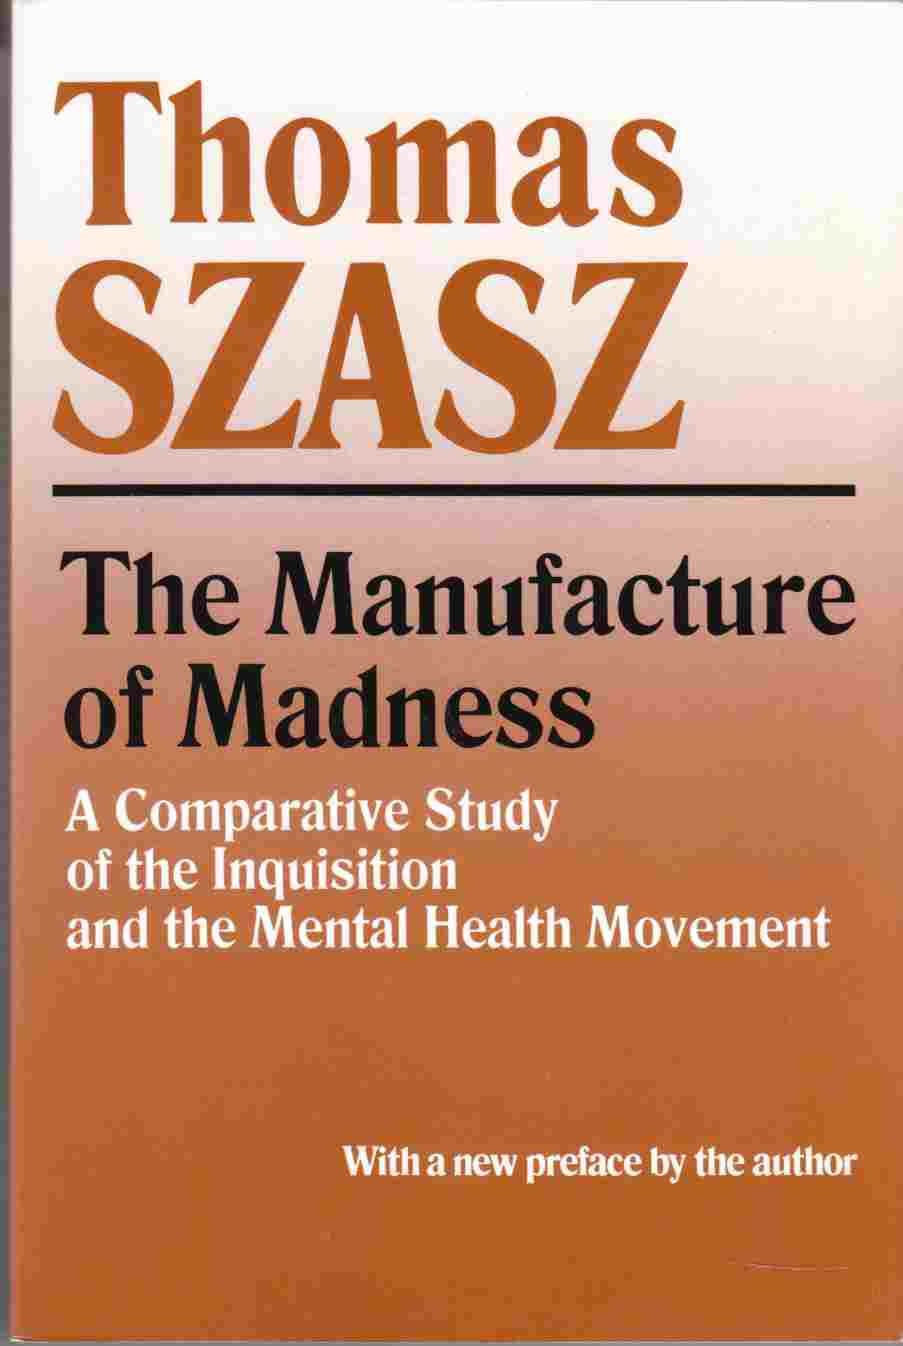 Image for The Manufacture of Madness A Comparative Study of the Inquisition and the Mental Health Movement